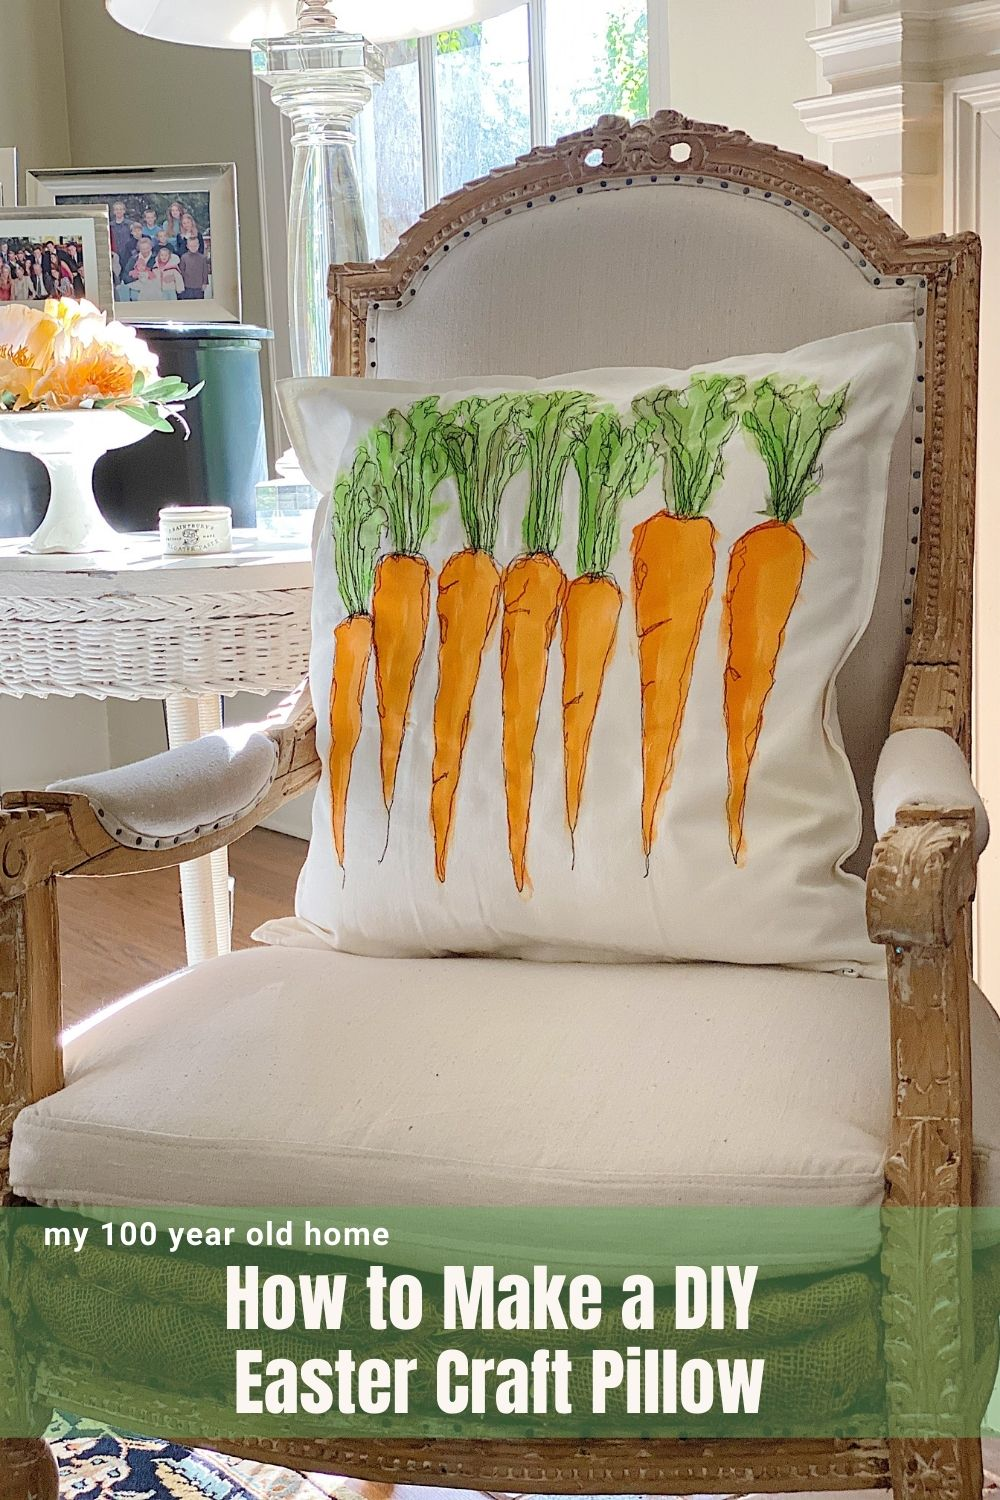 Today I am sharing a DIY Easter craft pillow. Learn how to make a Free Stich Embroidered pillow with carrots.